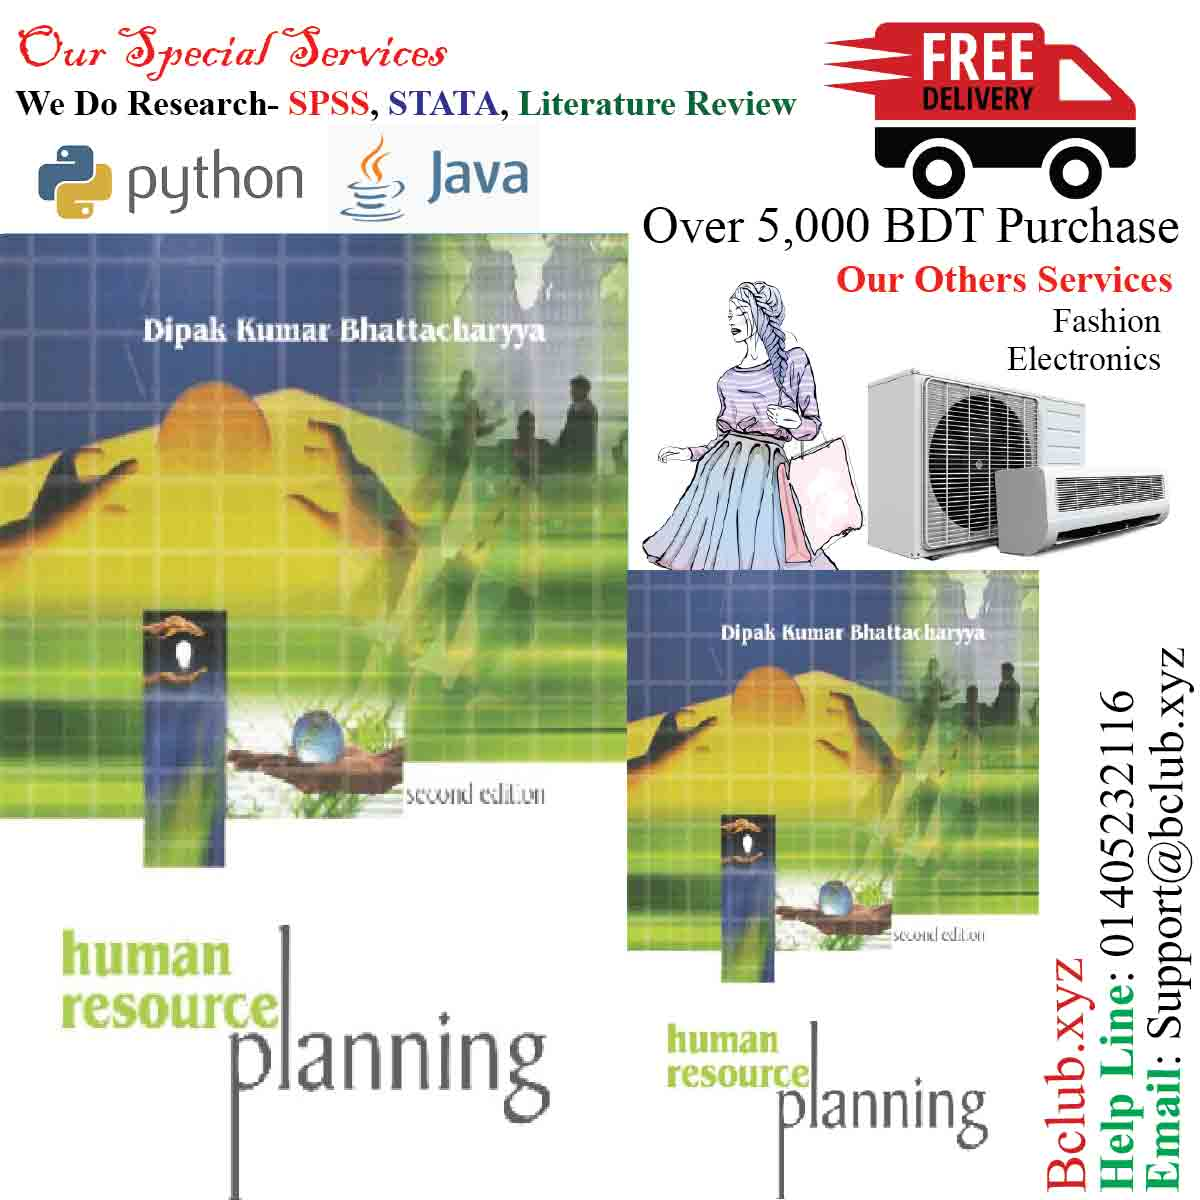 Human Resource Planning Kindle Edition by D K Bhattacharyya (Author)